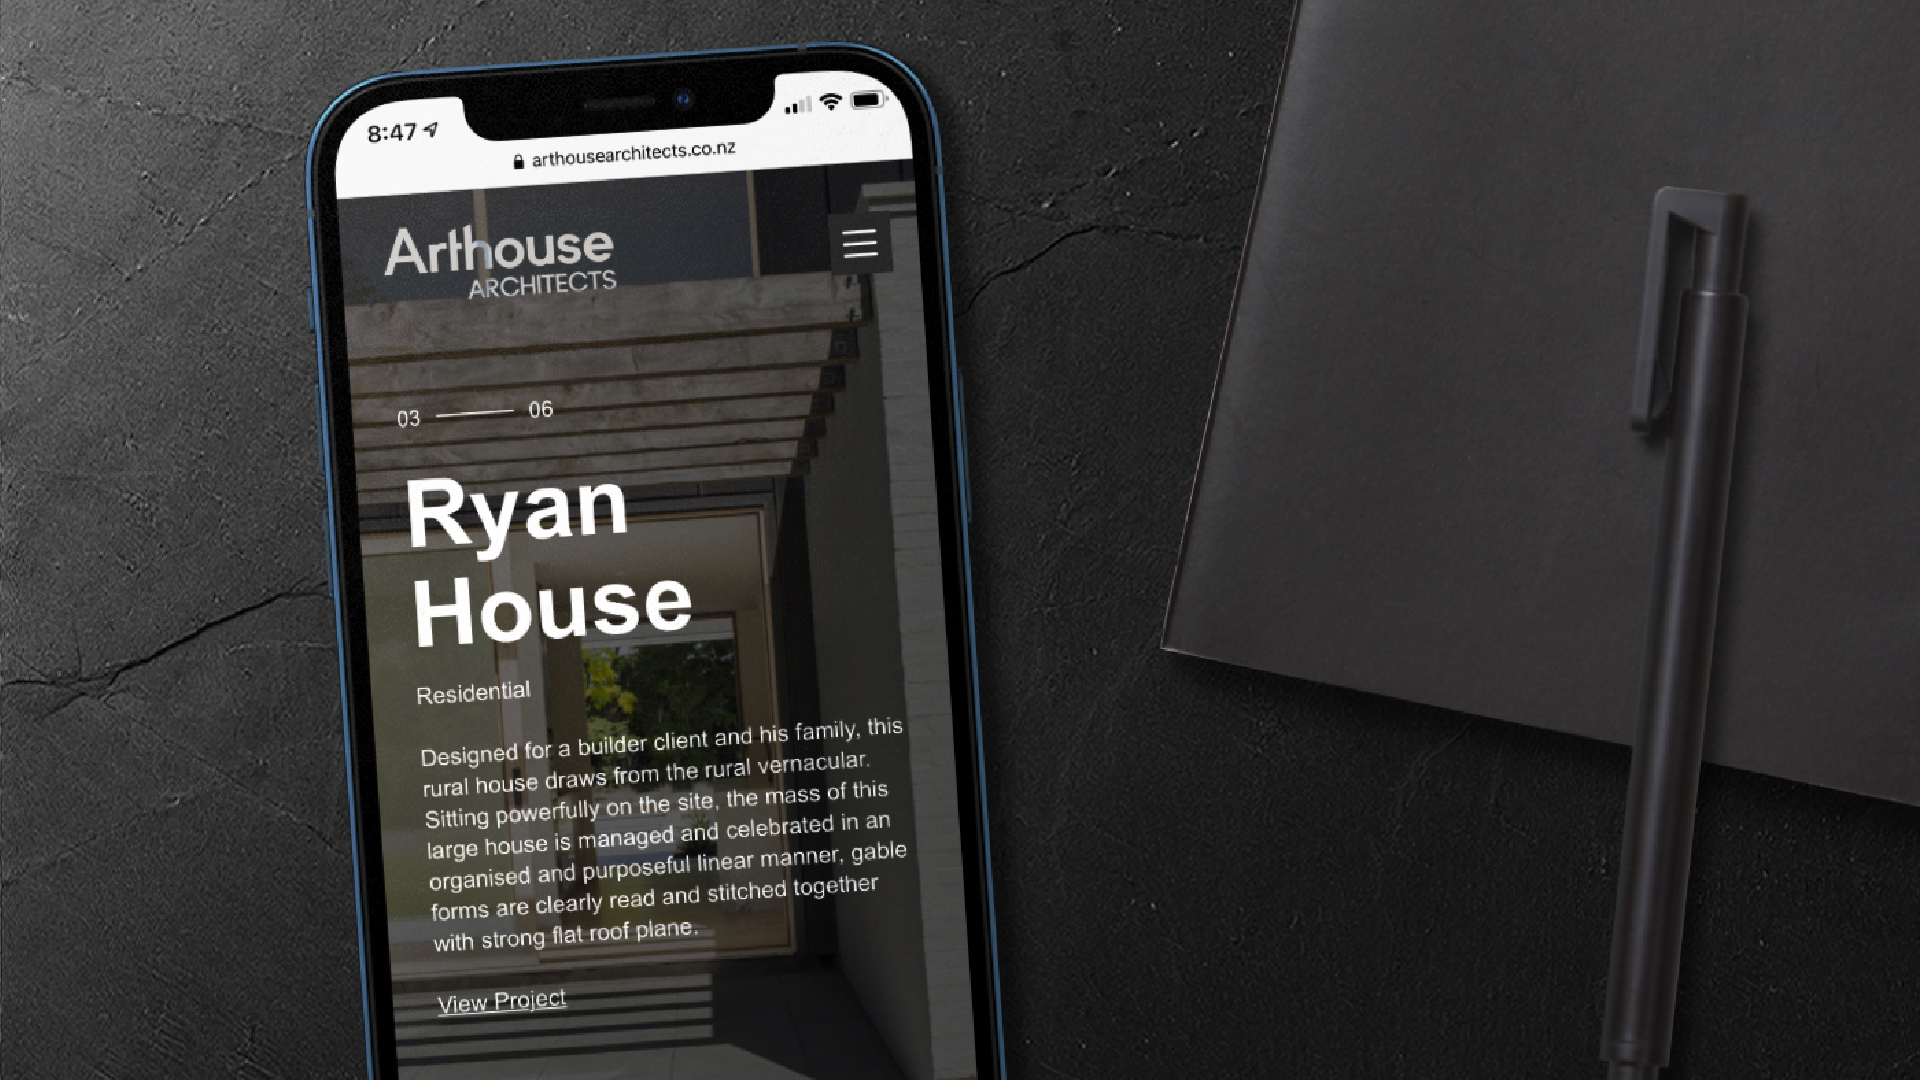 attraction studio arthouse architects brand web mobile view